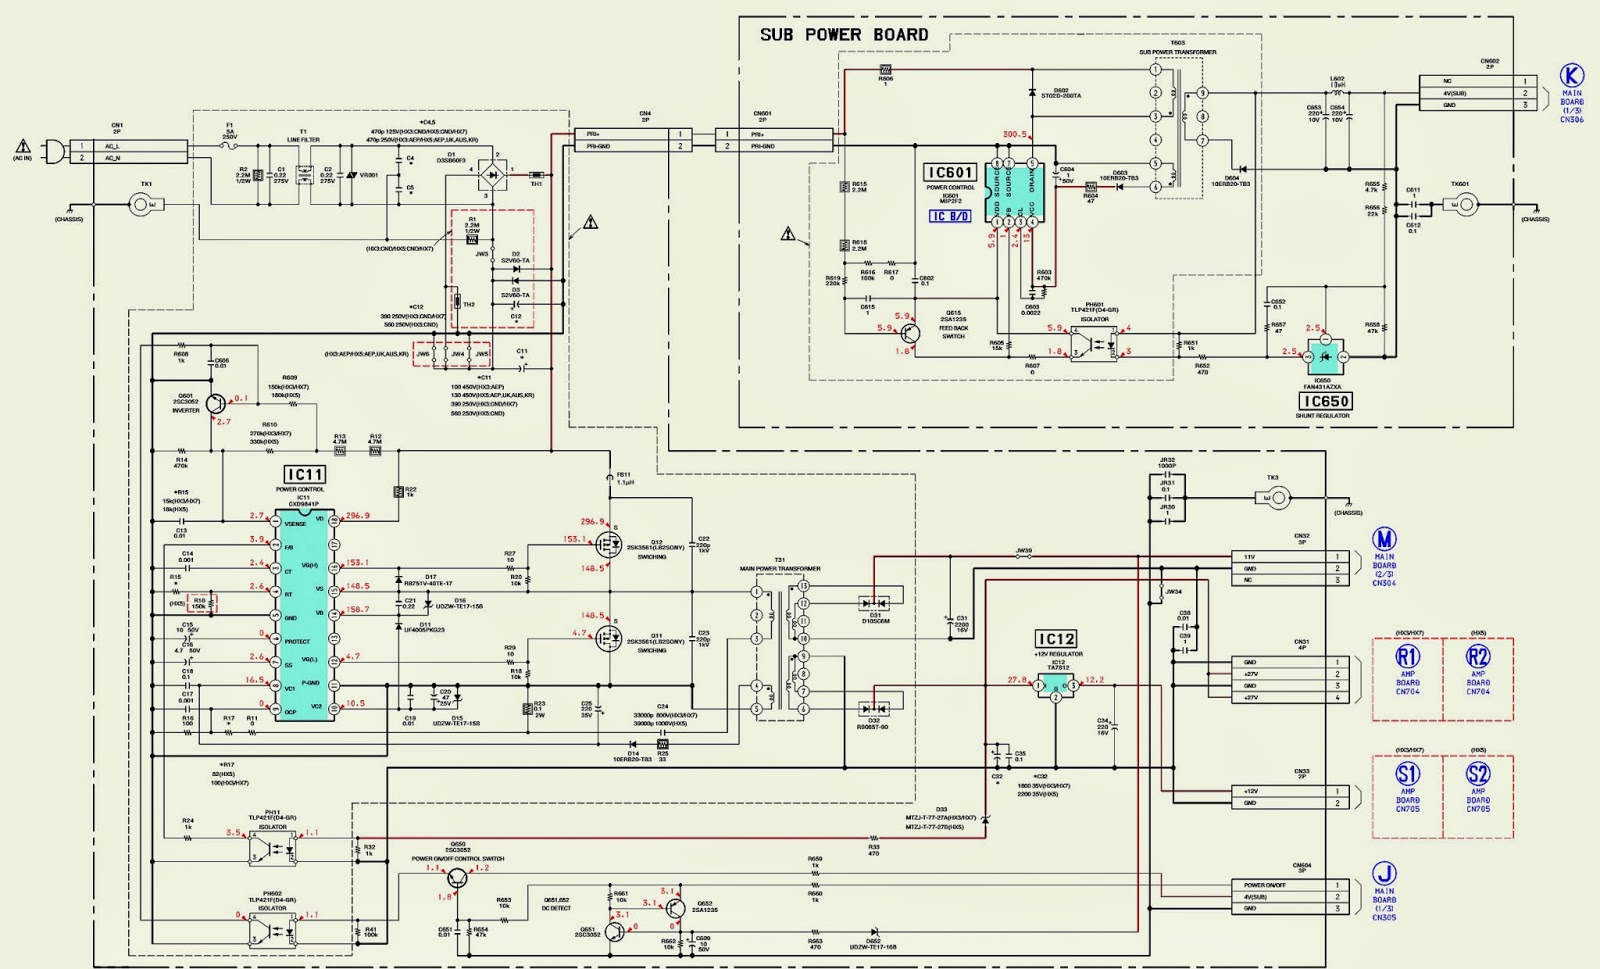 Schematic Diagrams  Sony Hcd-hx3  Hx5  Hx7